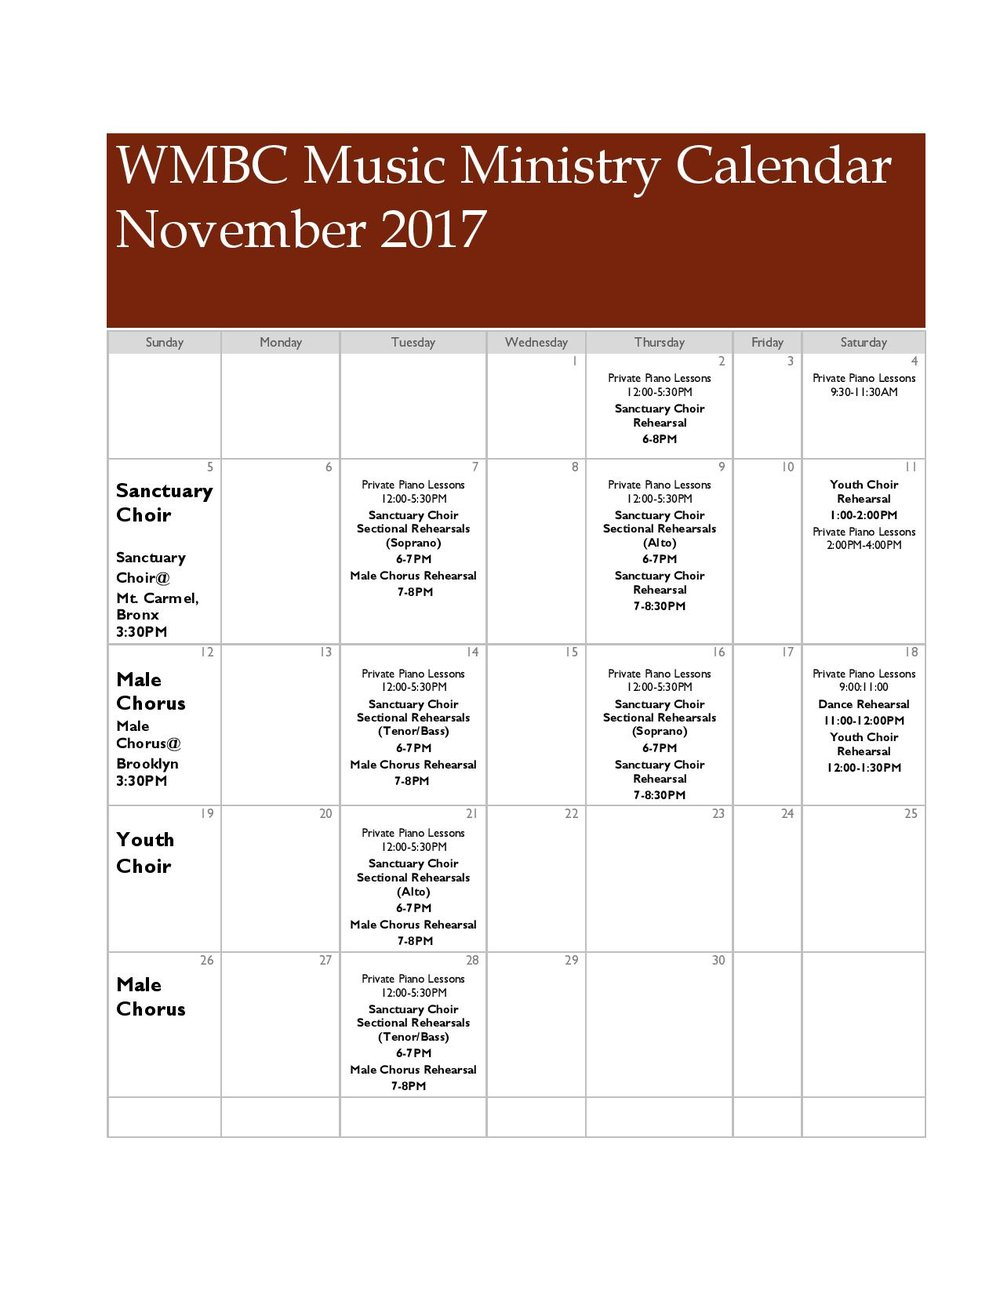 WMBC Music Ministry Newsletter November 2017  (Autosaved)-page-005.jpg